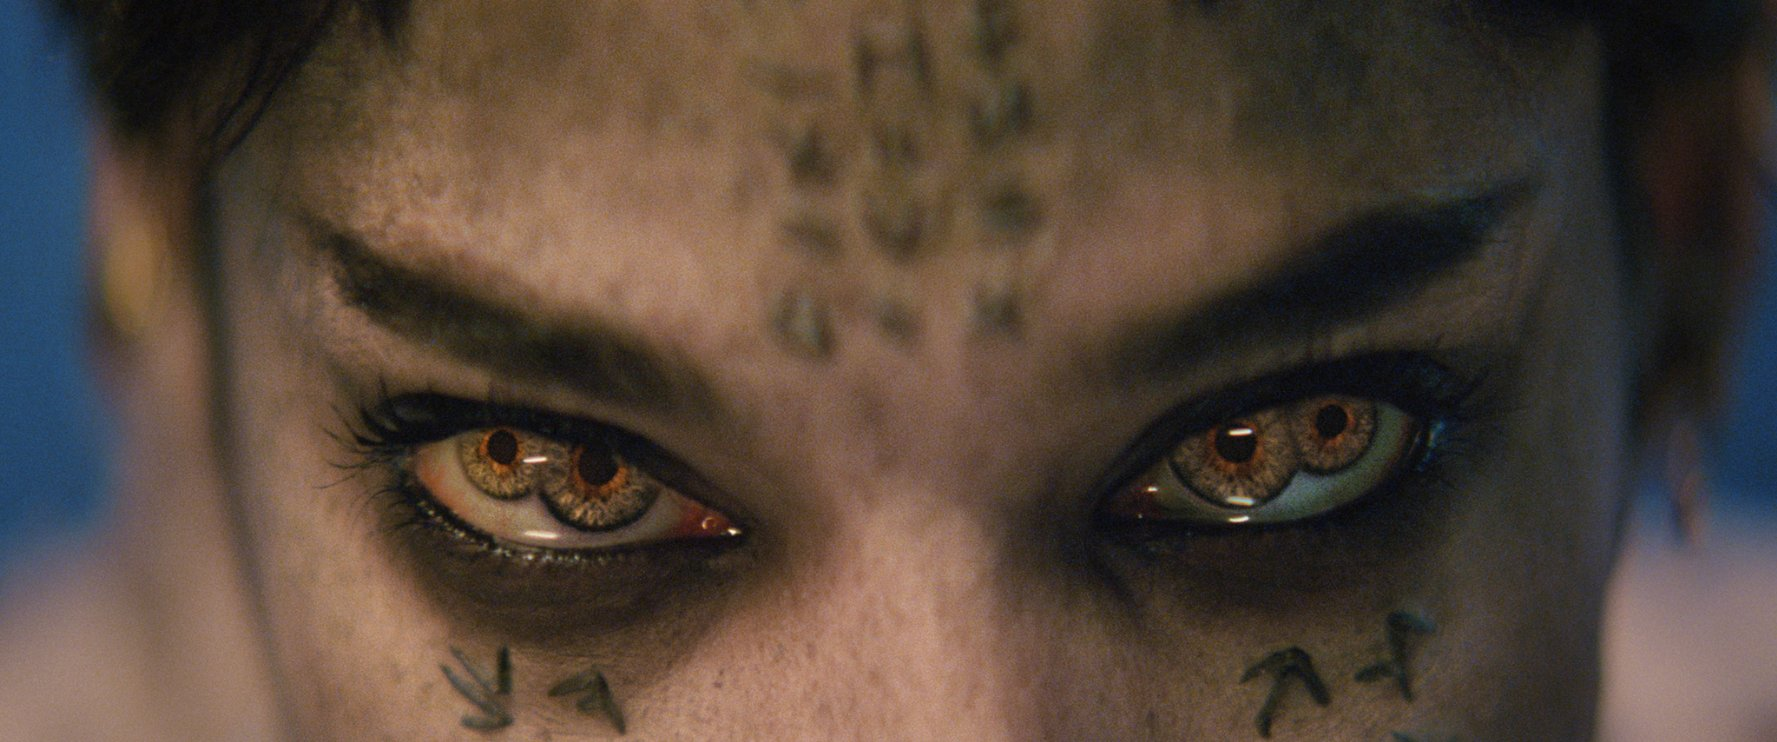 Review of The Mummy 2017 - Sofia Boutella as Ahmanet